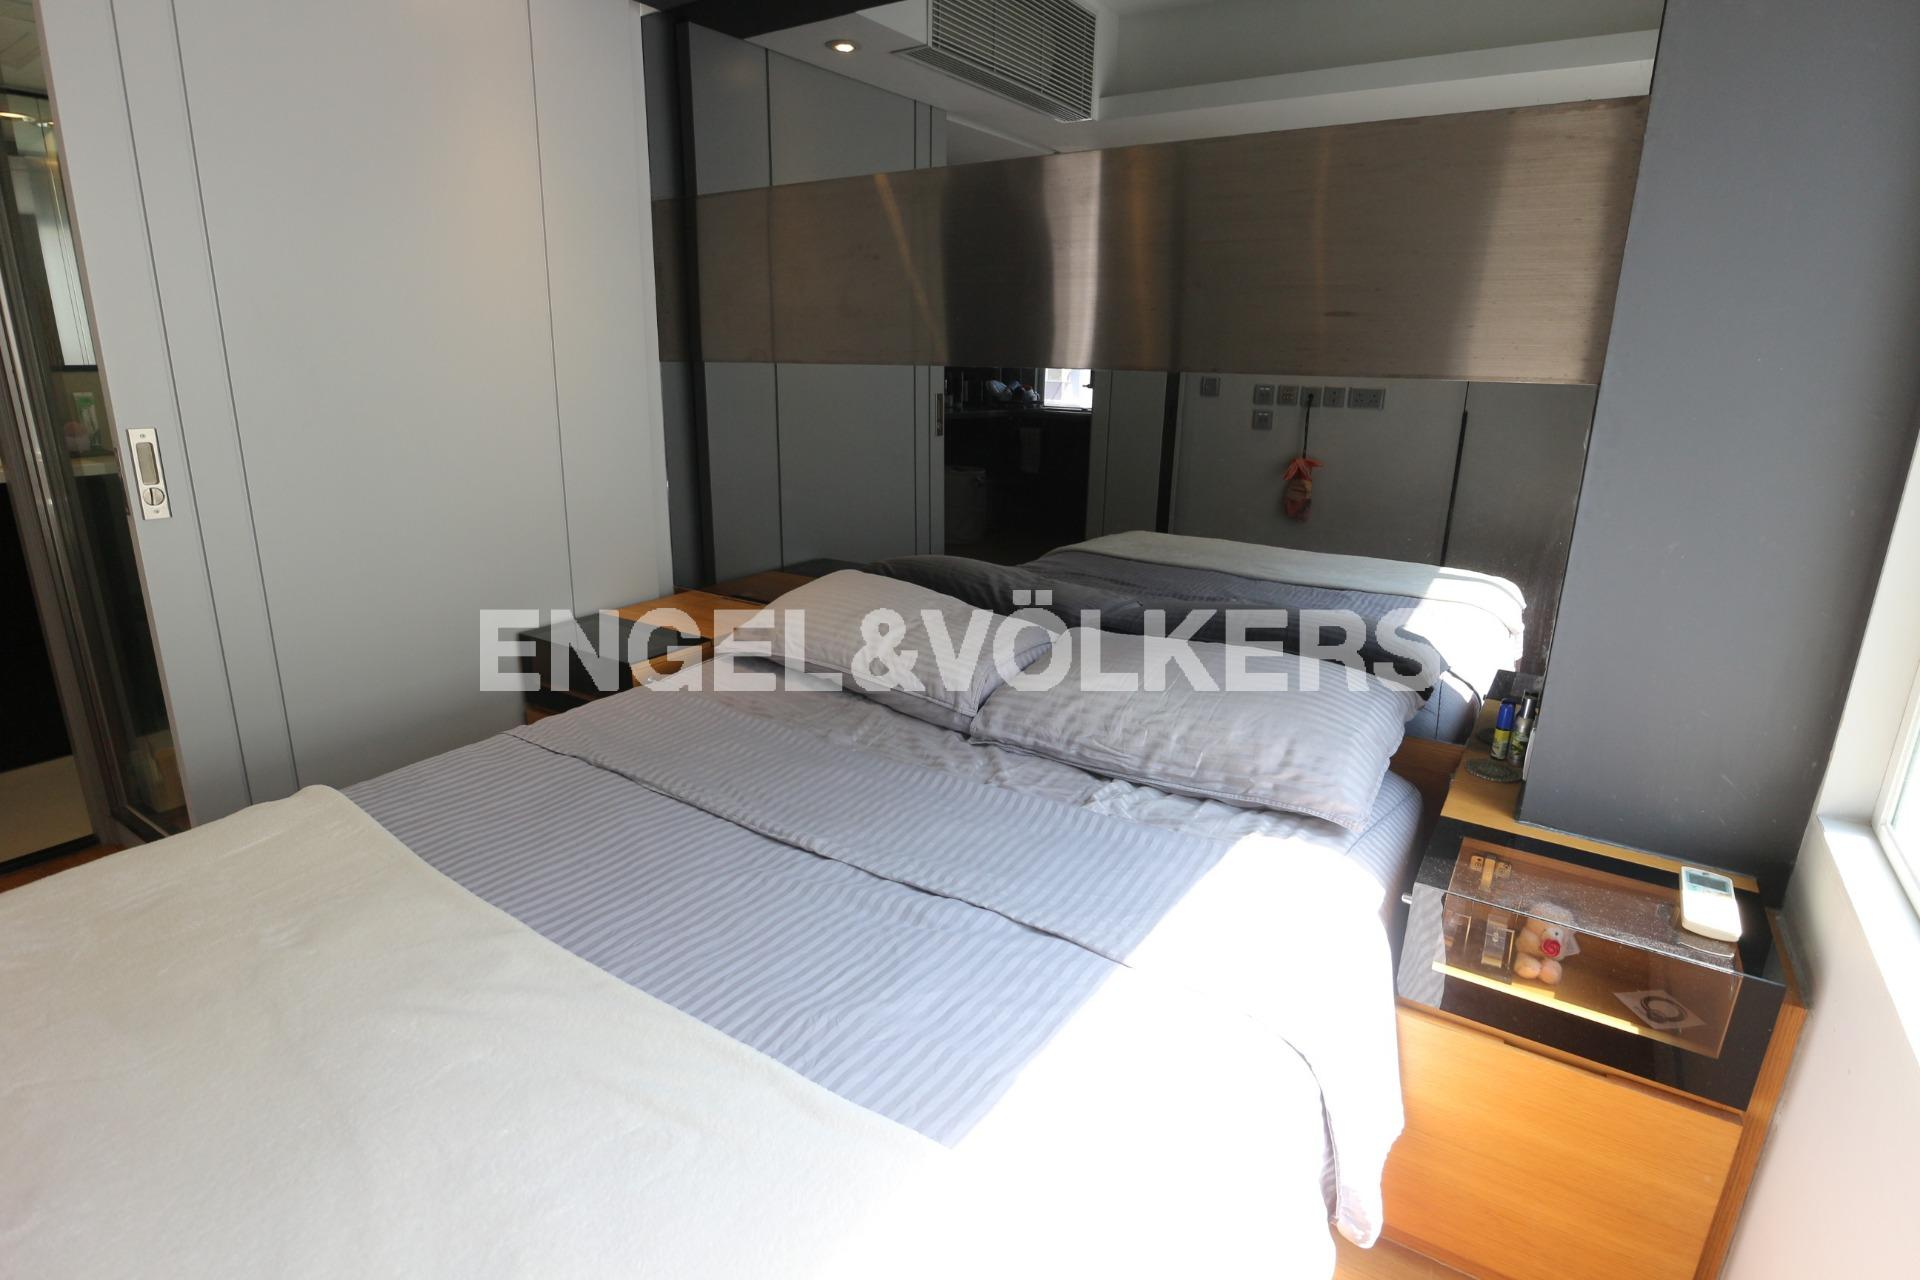 Apartment in Mid Level West - Tim Po Court 添寶閣